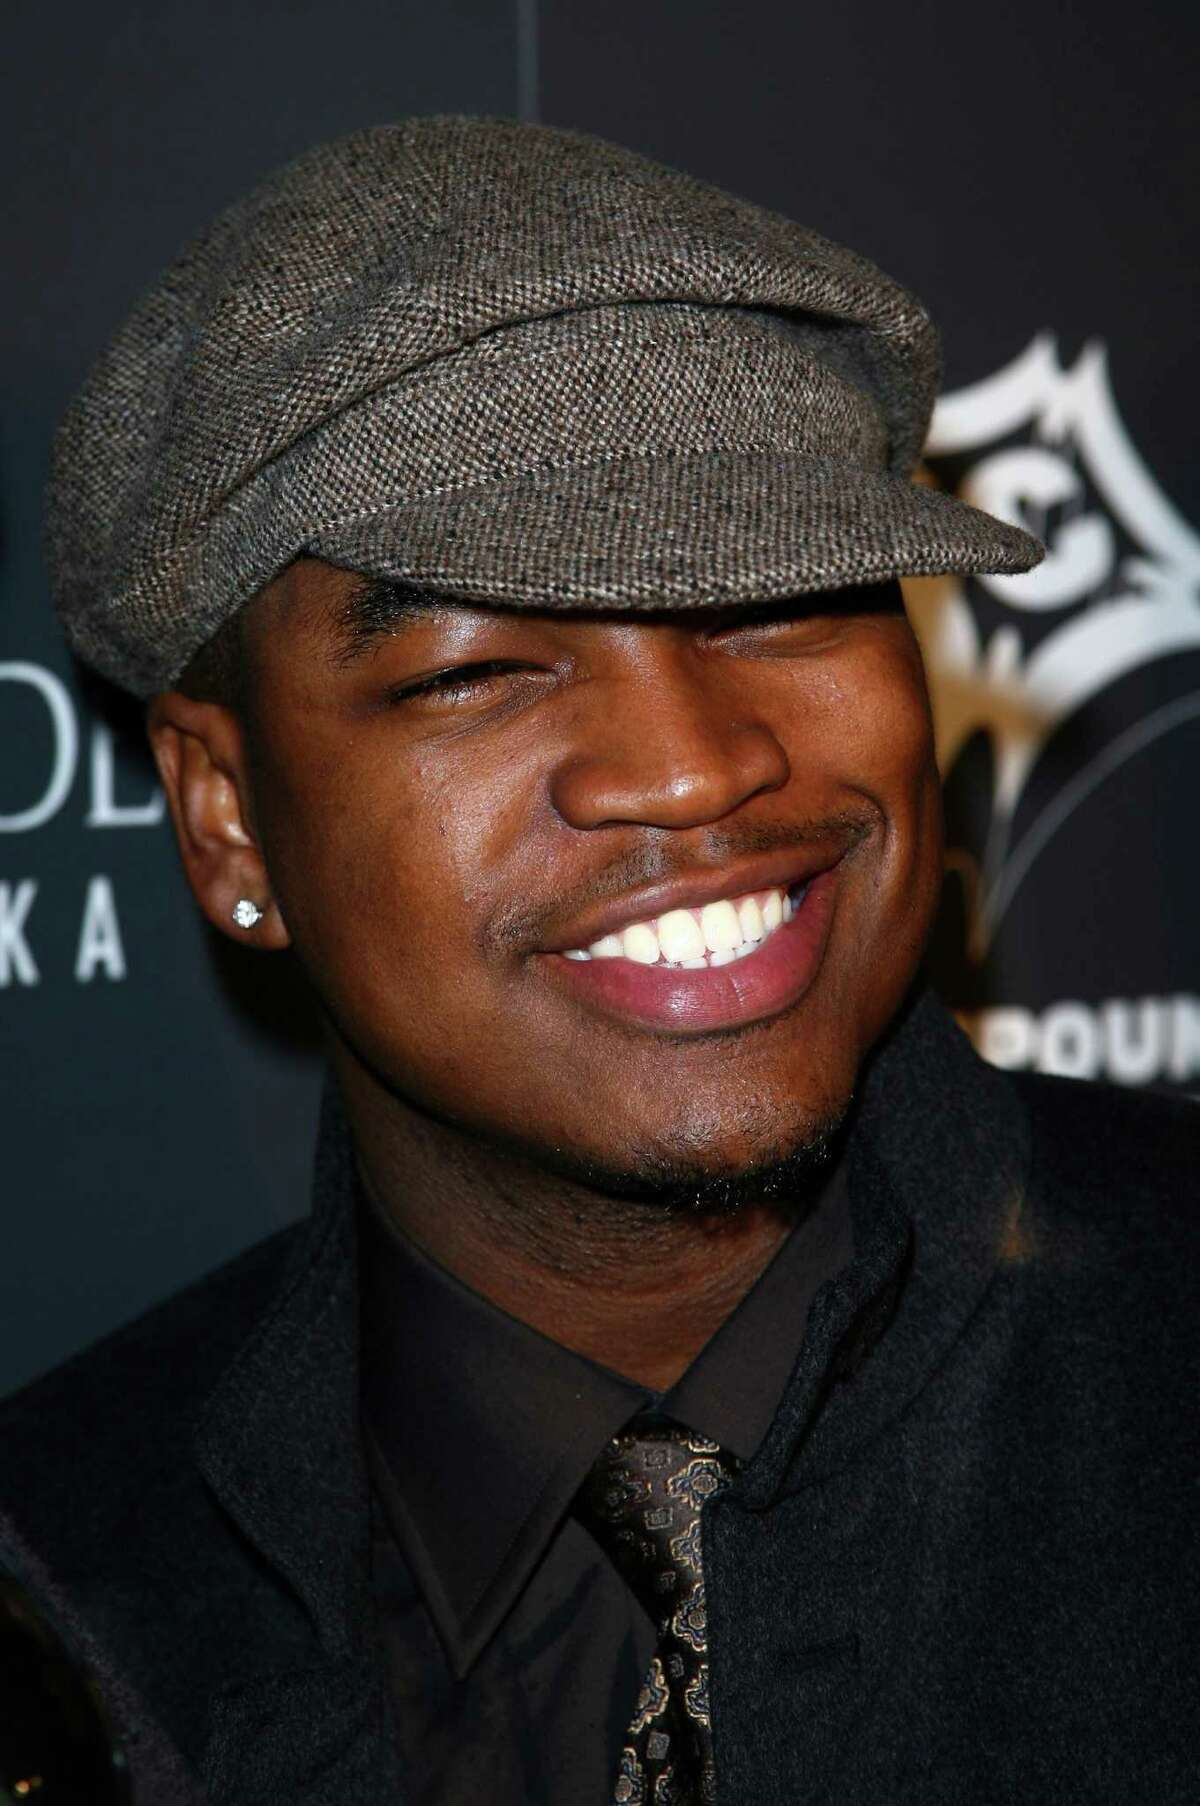 Singer Ne-Yo arrives for his birthday party at Tribeca Rooftop in this Oct. 18, 2007 photo taken in New York. The silky-voiced R&B star joined Tim McGraw for a surprise performance Wednesday night Oct. 31, 2012 in Nashville. The two sang a pair of duets for a crowd of a few hundred invited guests on the eve of the Country Music Association Awards. (AP Photo/Gary He)